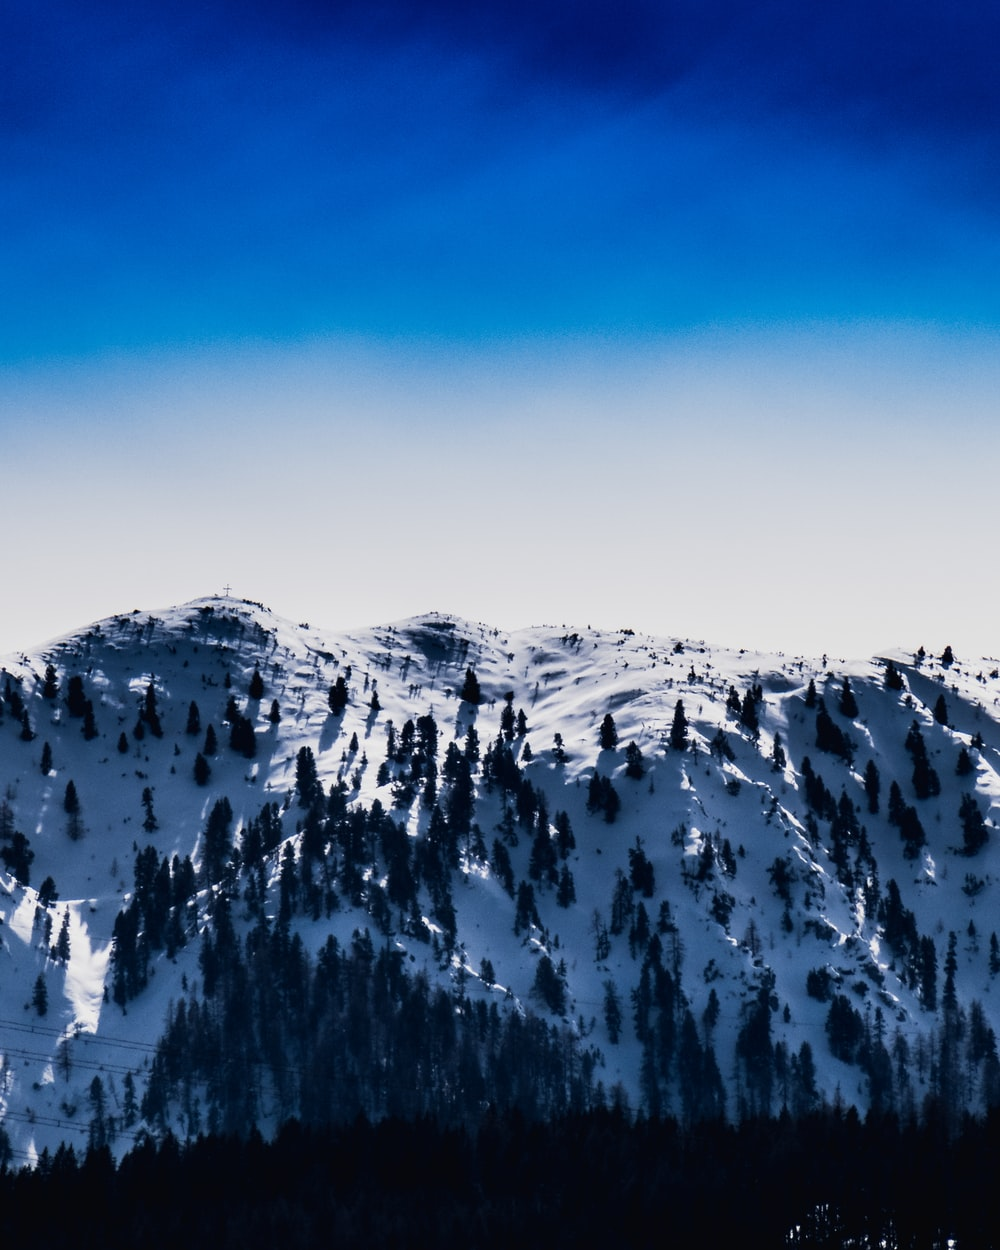 snow capped mountain under blue sky during daytime